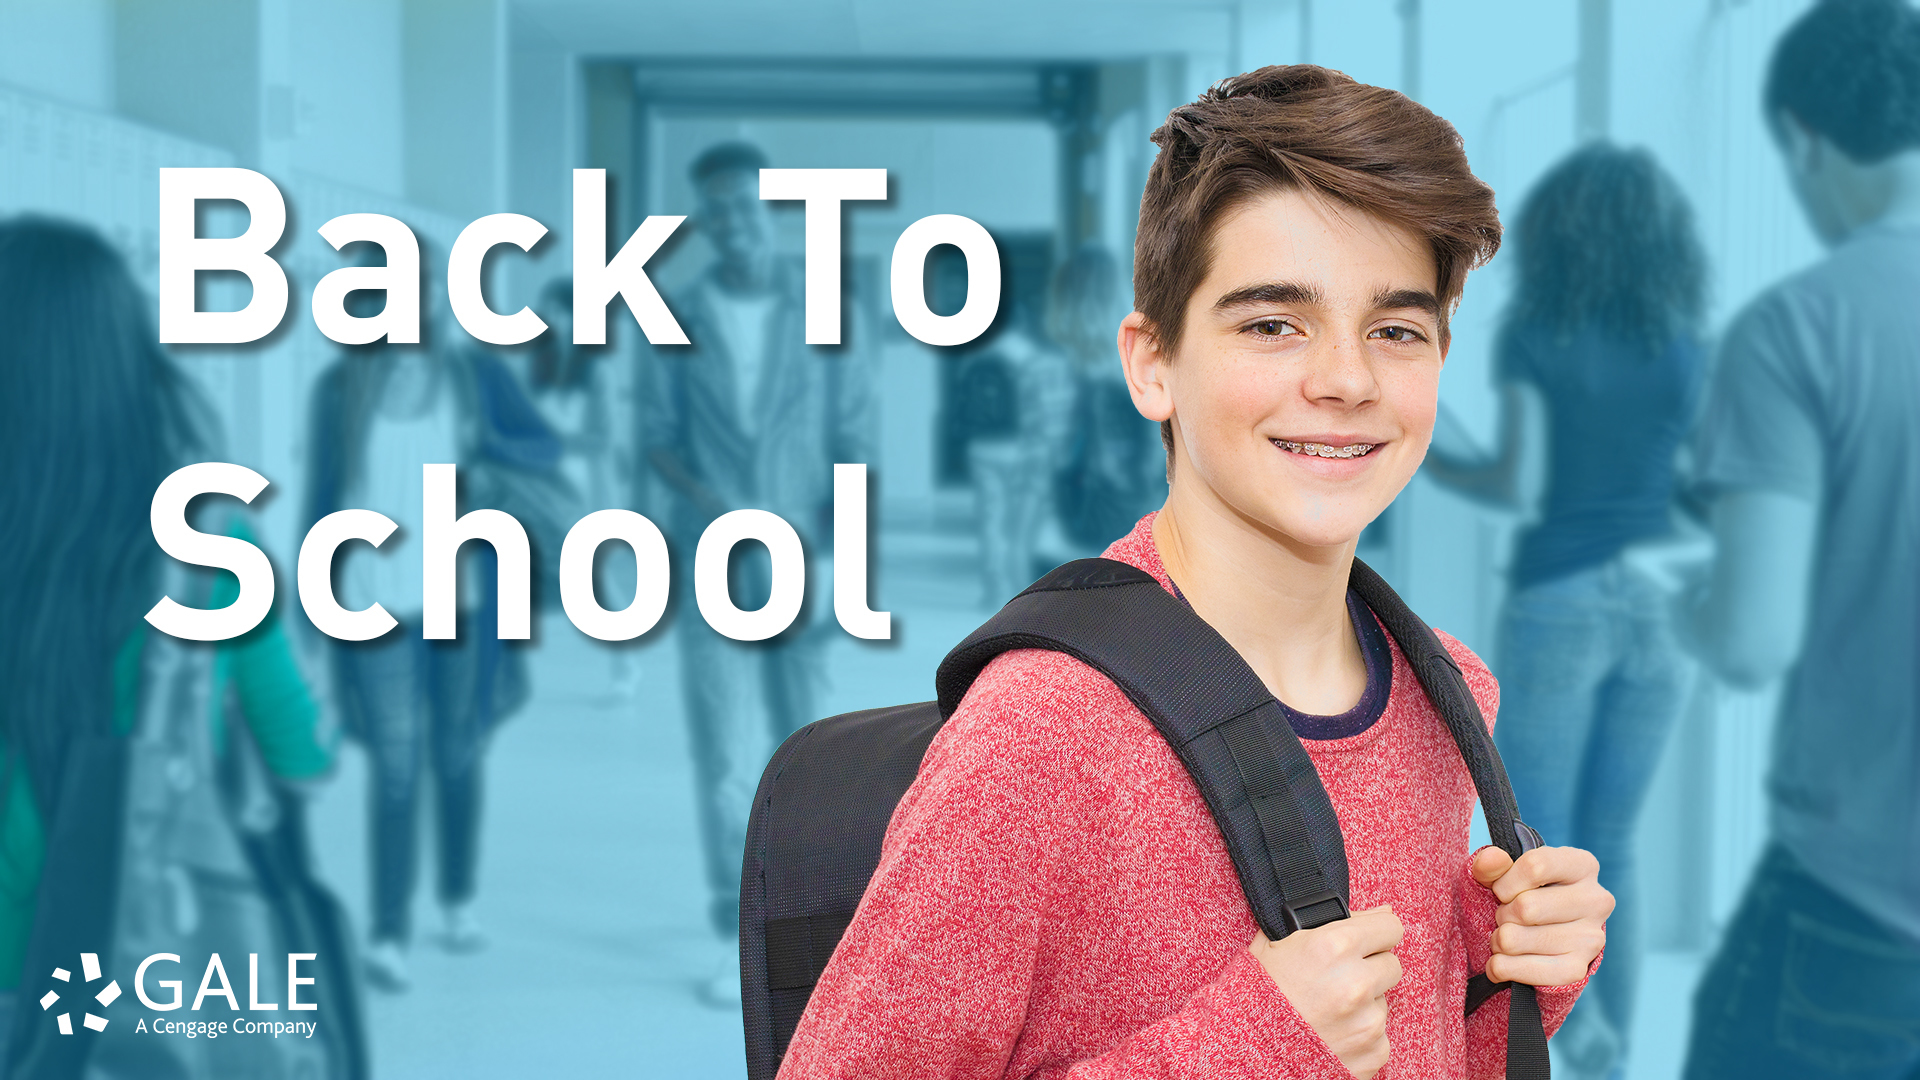 Back To School with the UEN Thumbnail